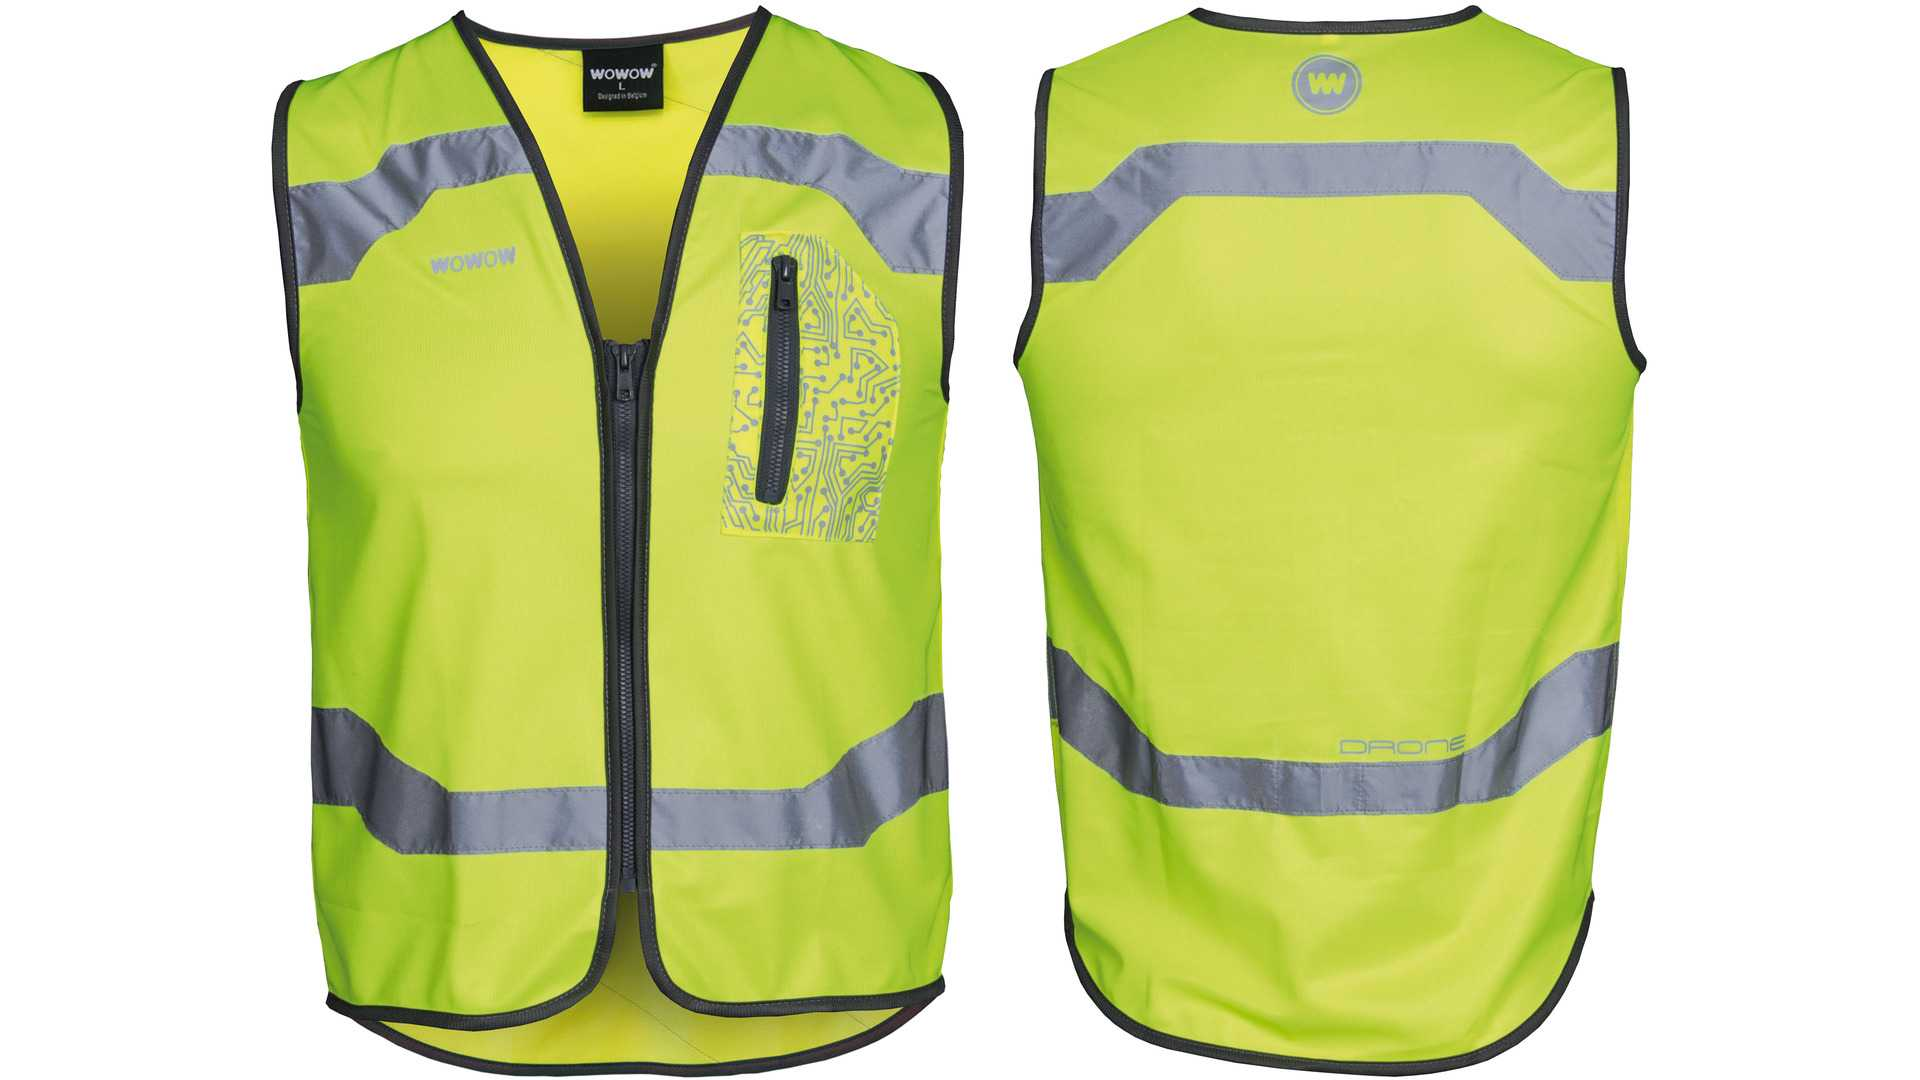 Wowow Reflecterende vest drone maat xxl - 011603